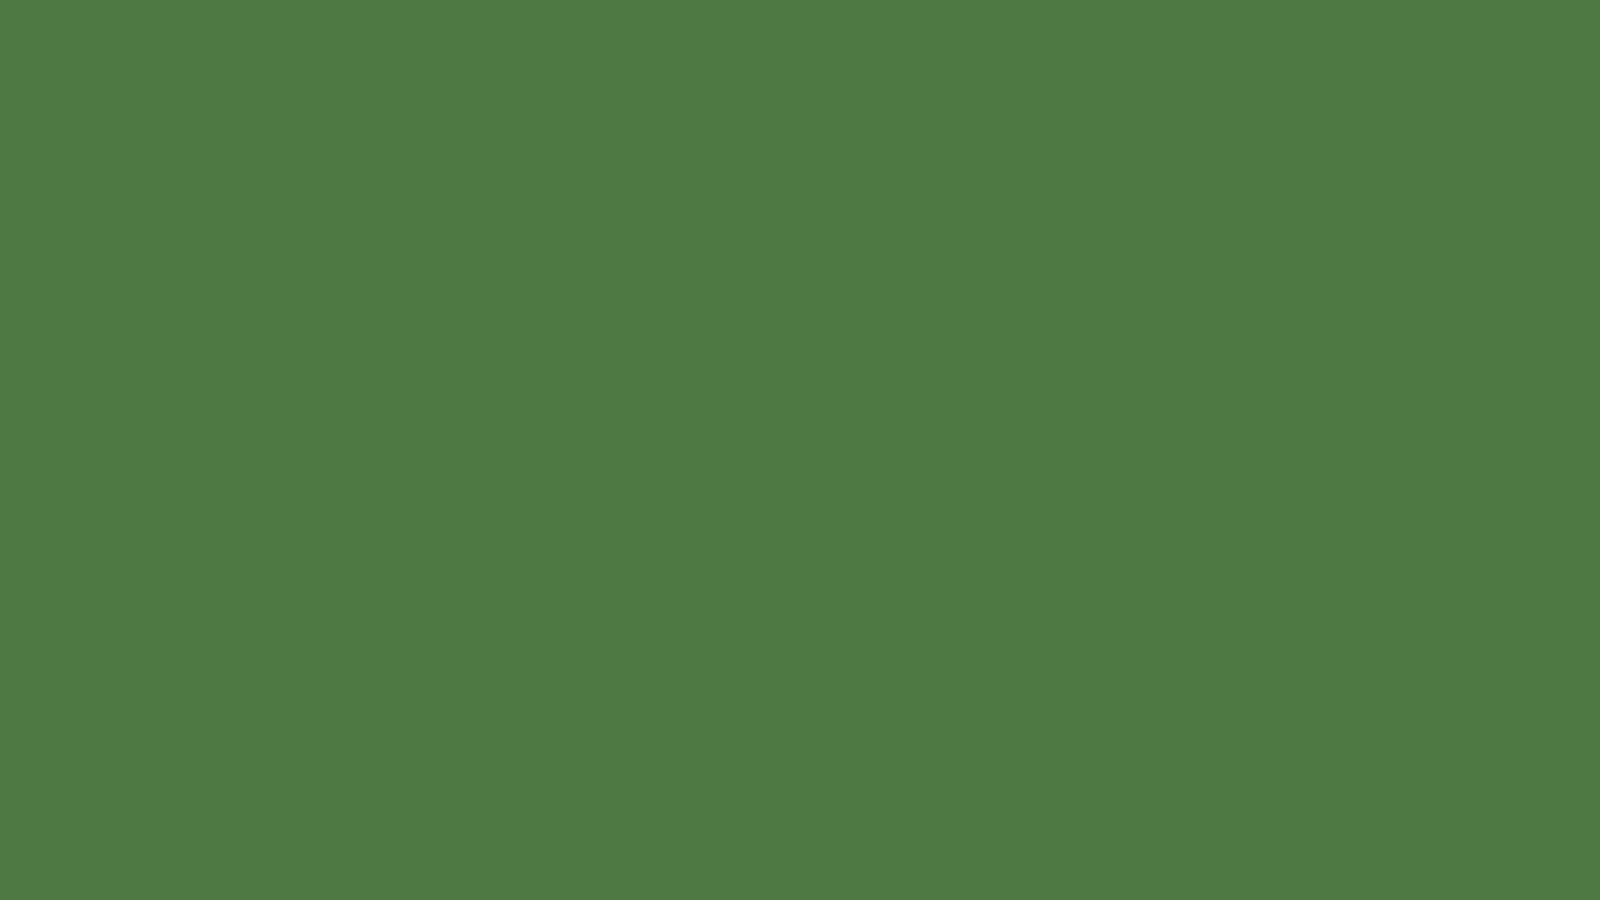 1600x900 Fern Green Solid Color Background